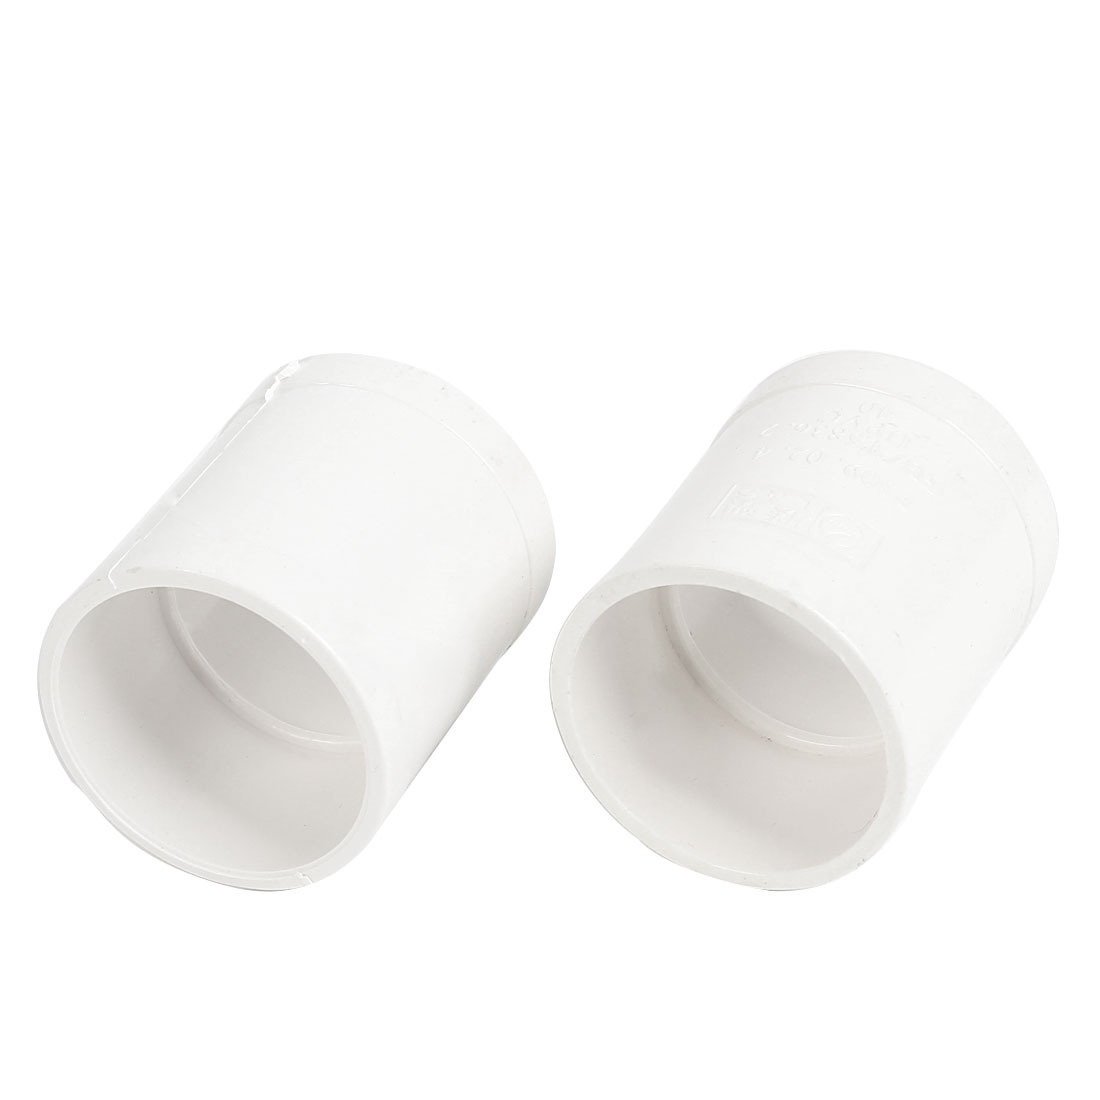 2PCS White PVC 40mm Inner Dia Straight Design Pipe Tube Connector